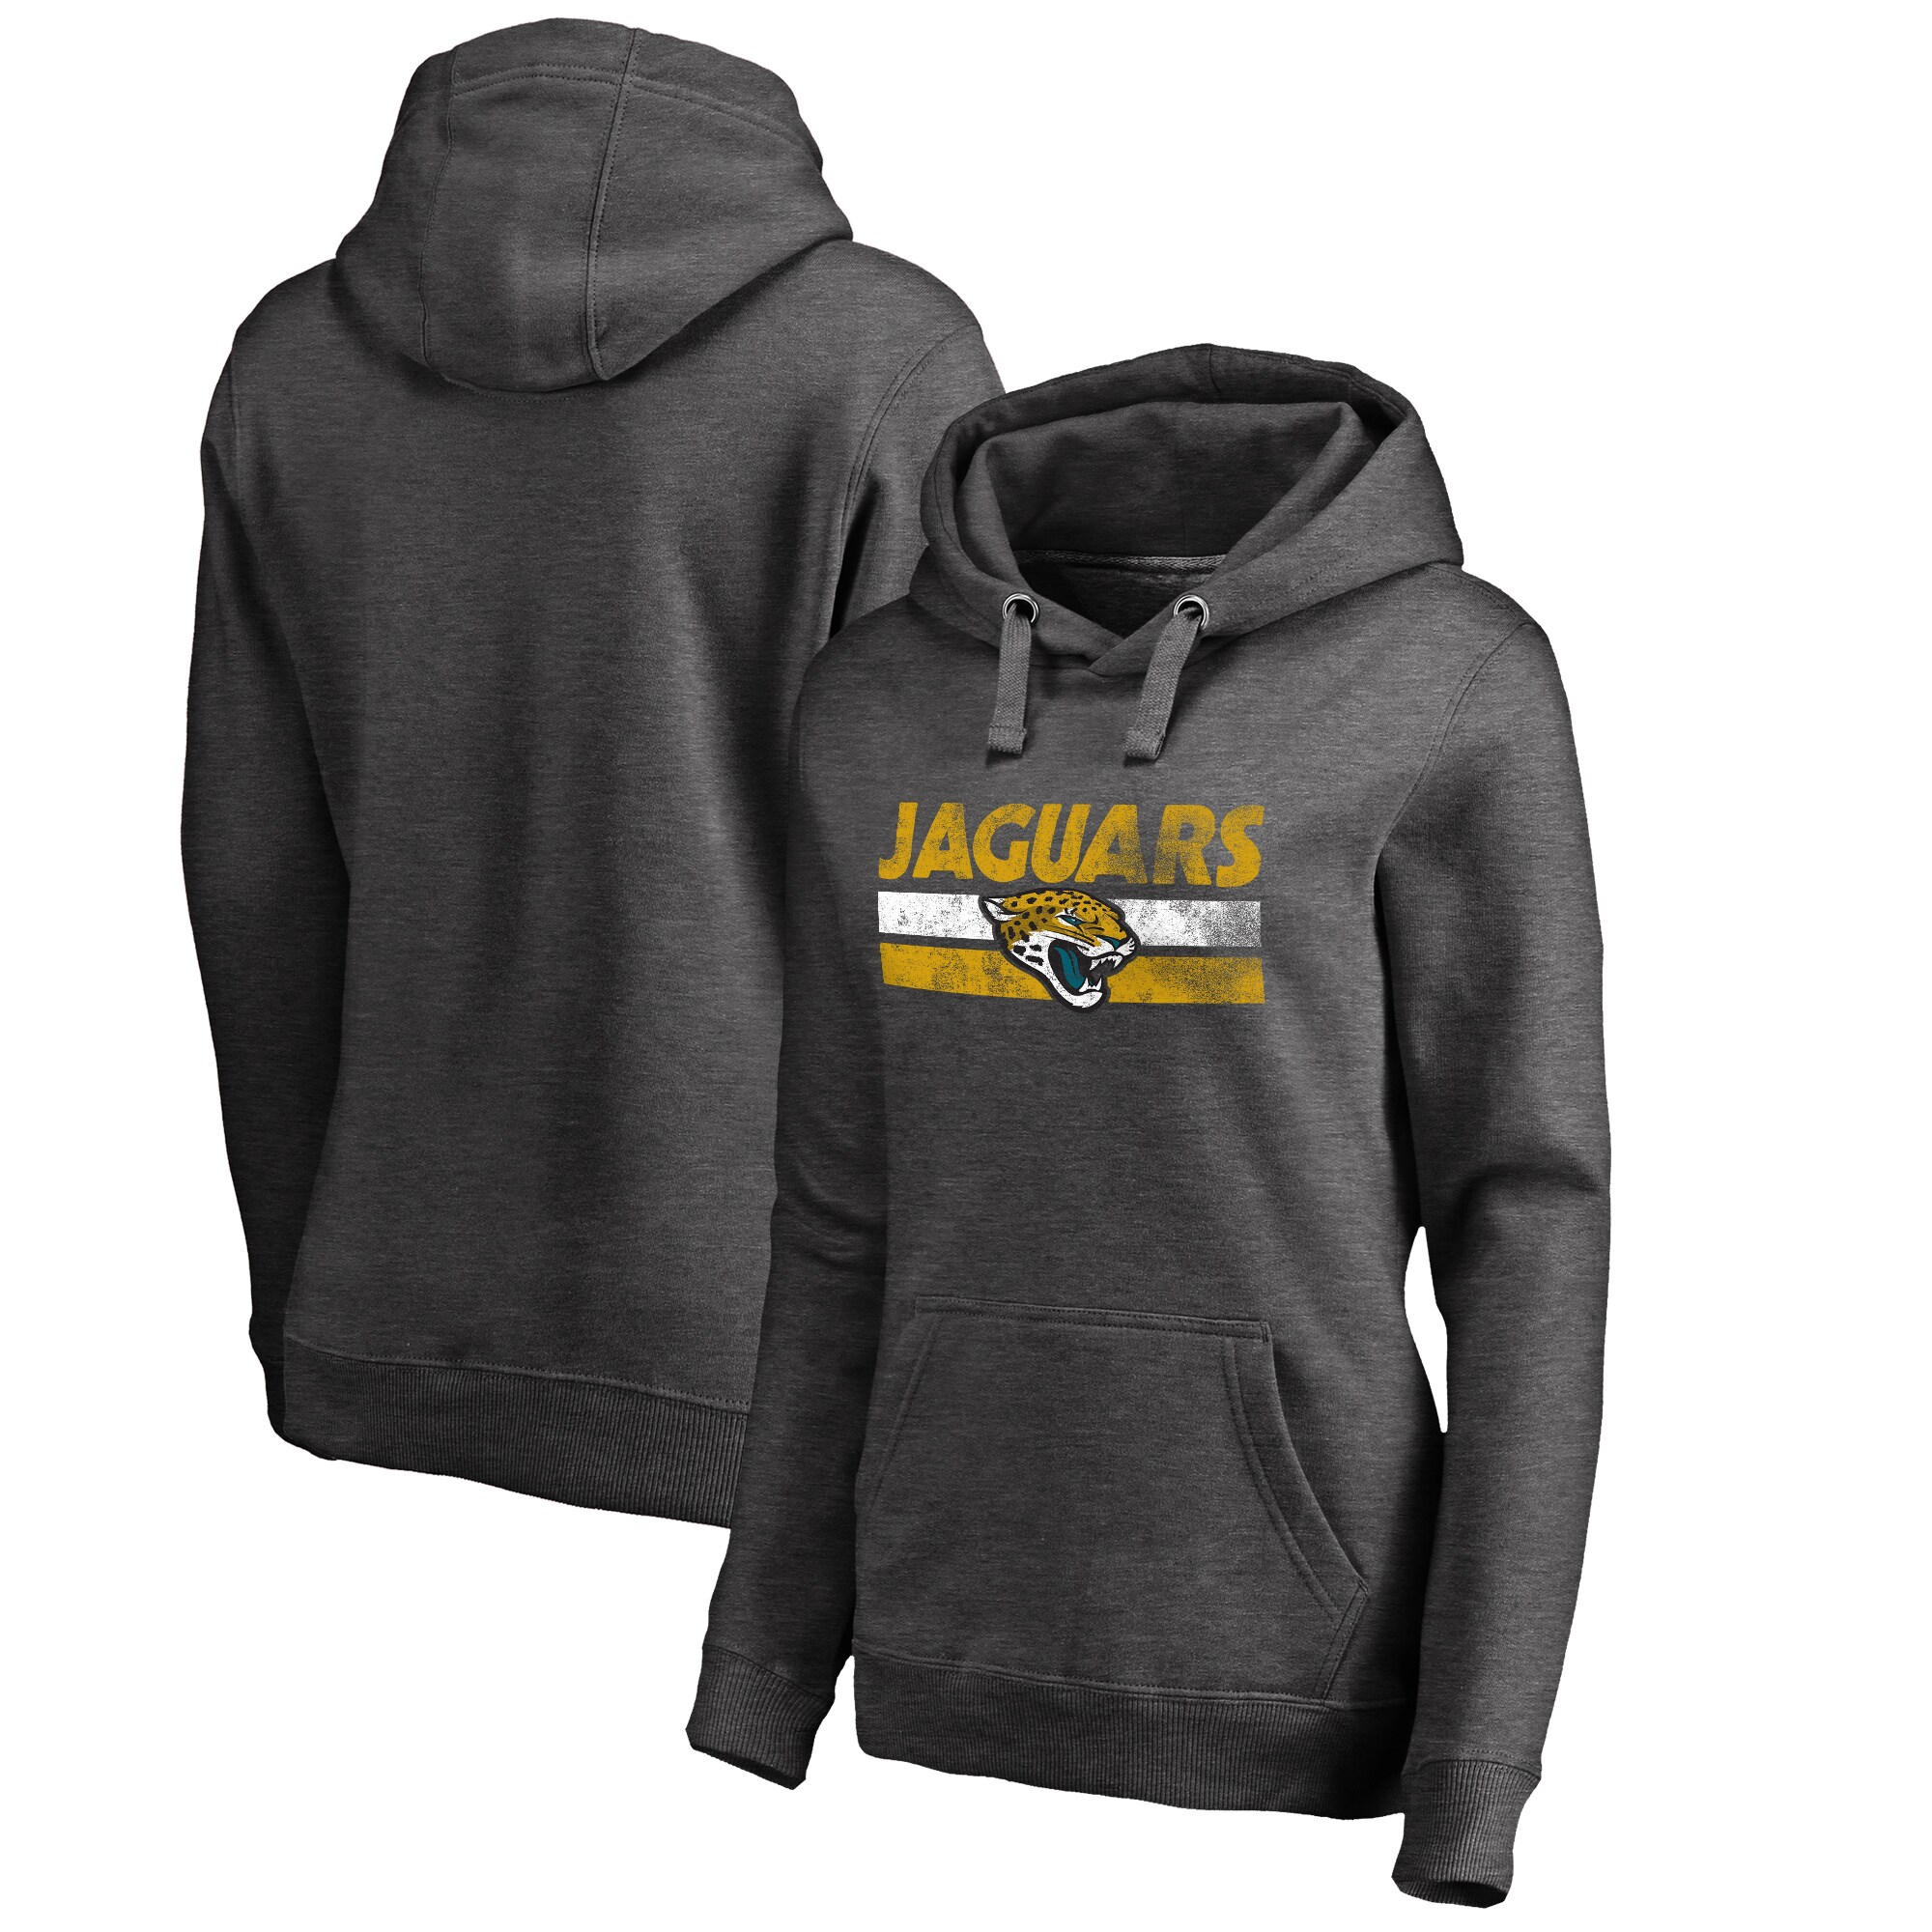 Jacksonville Jaguars NFL Pro Line by Fanatics Branded Women's Plus Sizes First String Pullover Hoodie - Charcoal